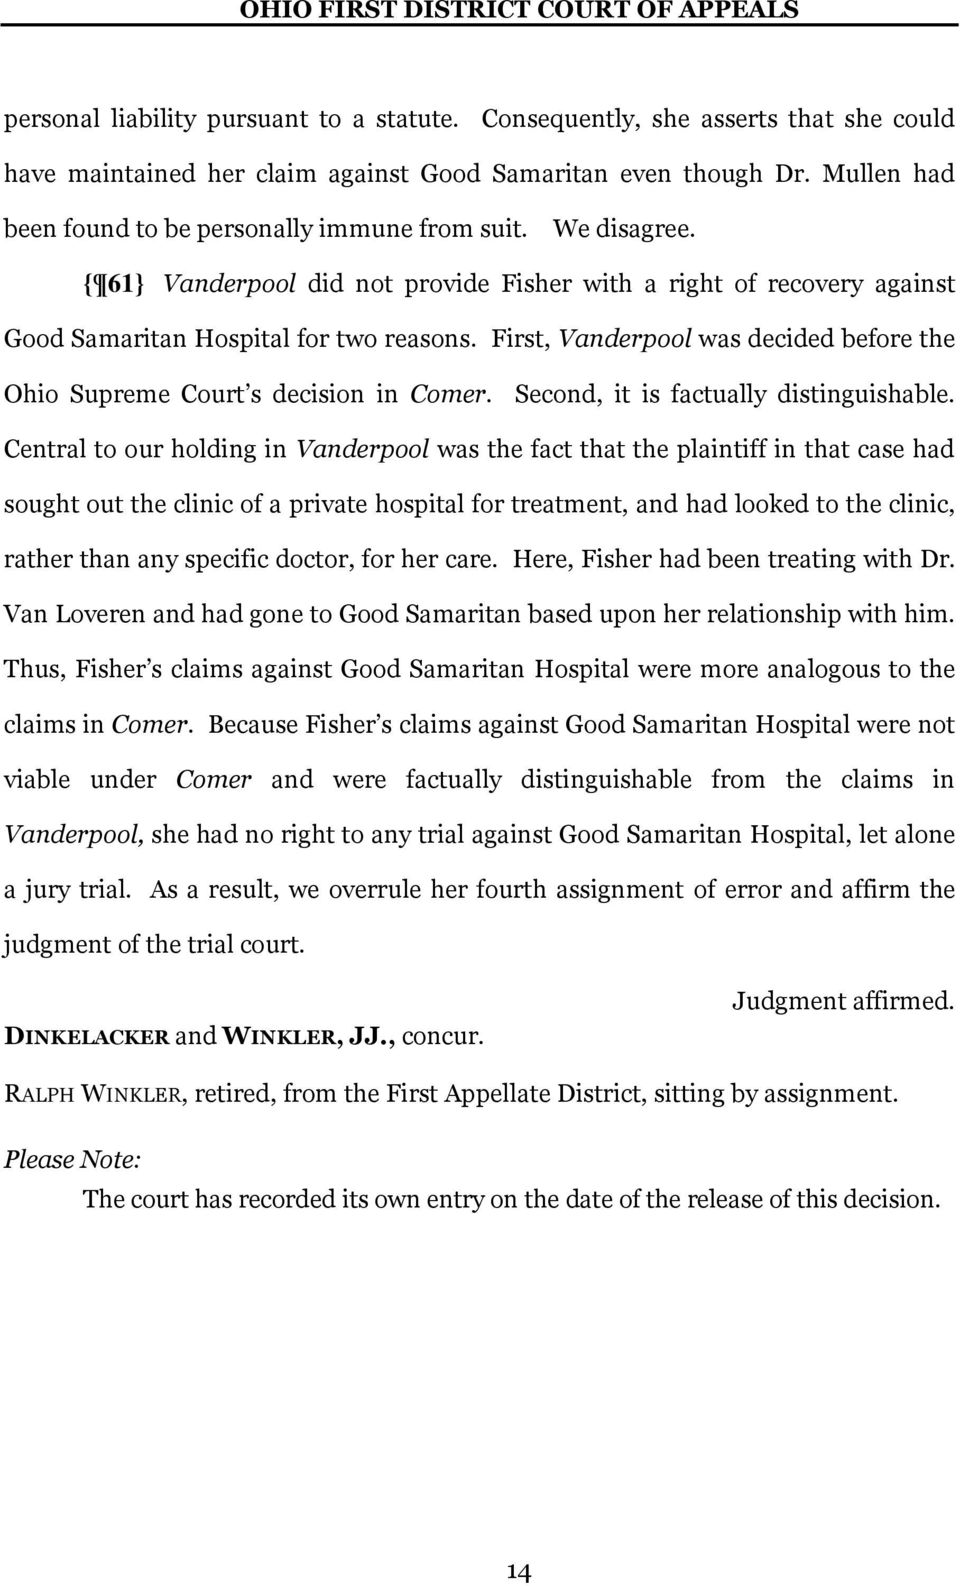 First, Vanderpool was decided before the Ohio Supreme Court s decision in Comer. Second, it is factually distinguishable.